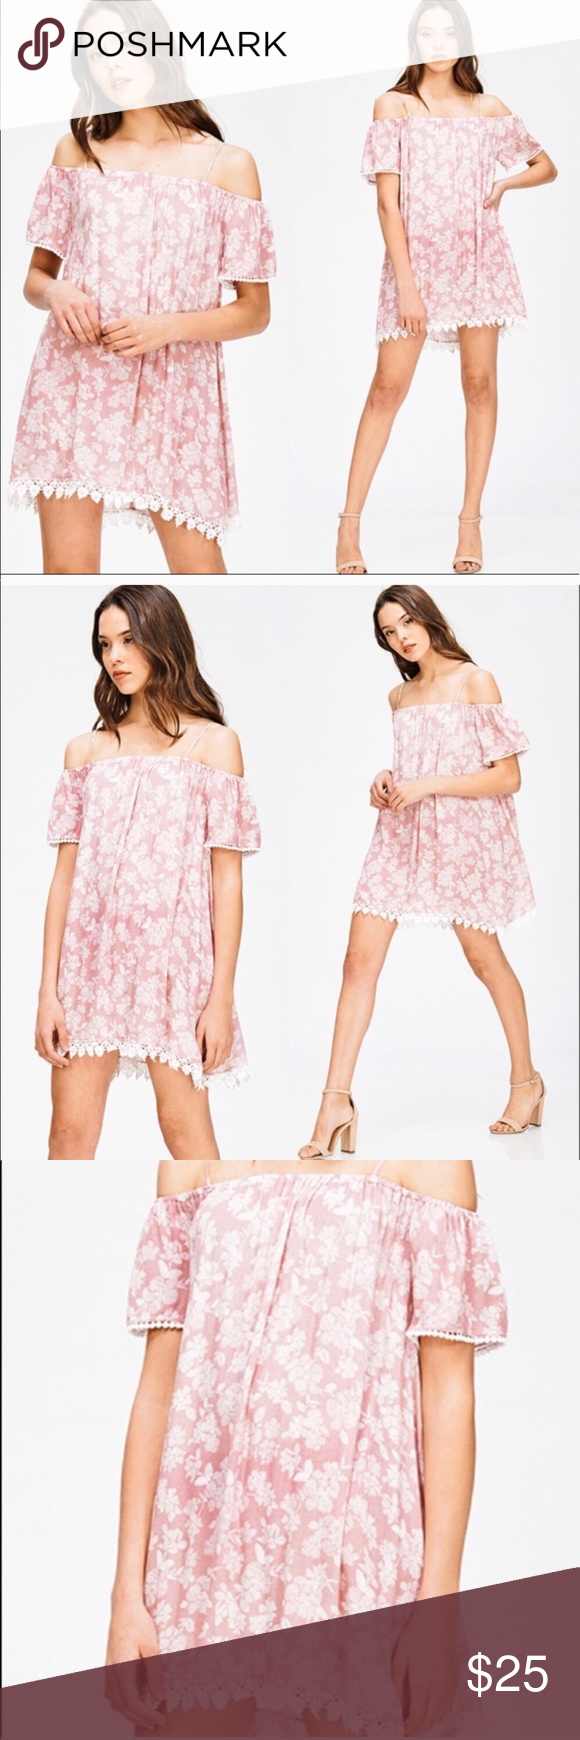 c2cfbe3b1e28 Mind Code pink and white floral off shoulder dress Mind Code pink and white  floral off